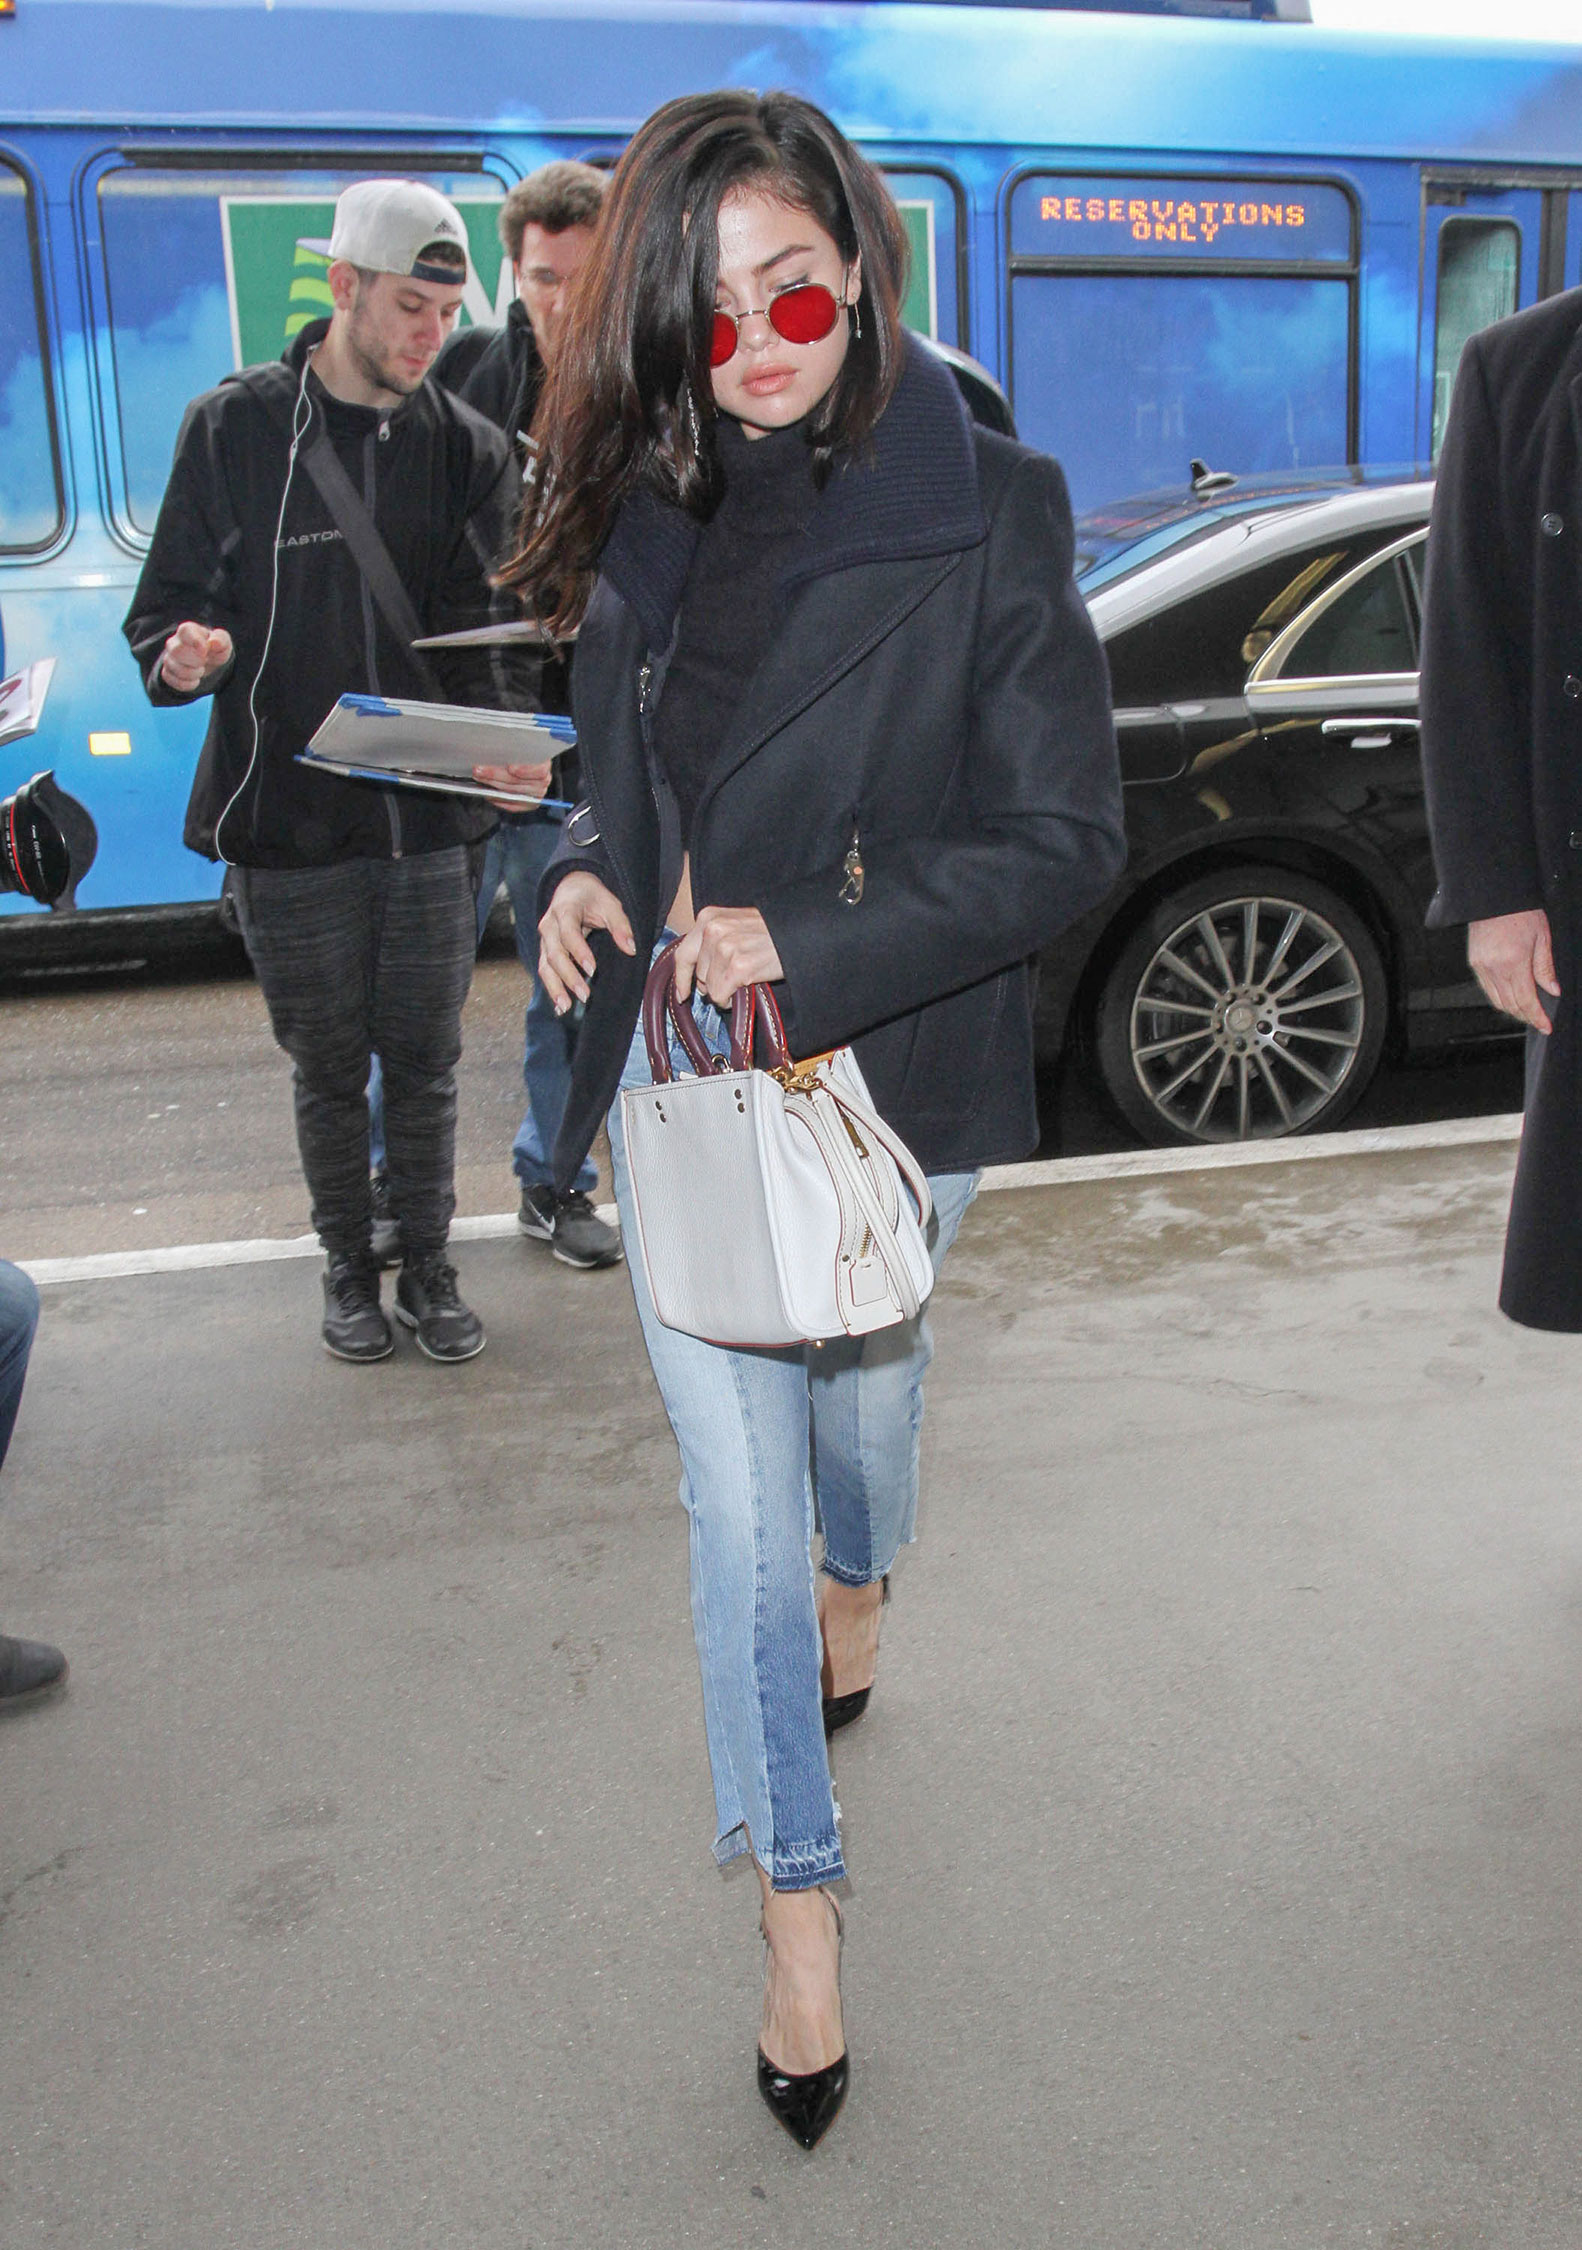 Selena Gomez is killin it her black crop turtleneck sweater, wool jacket and twist seam jeans.